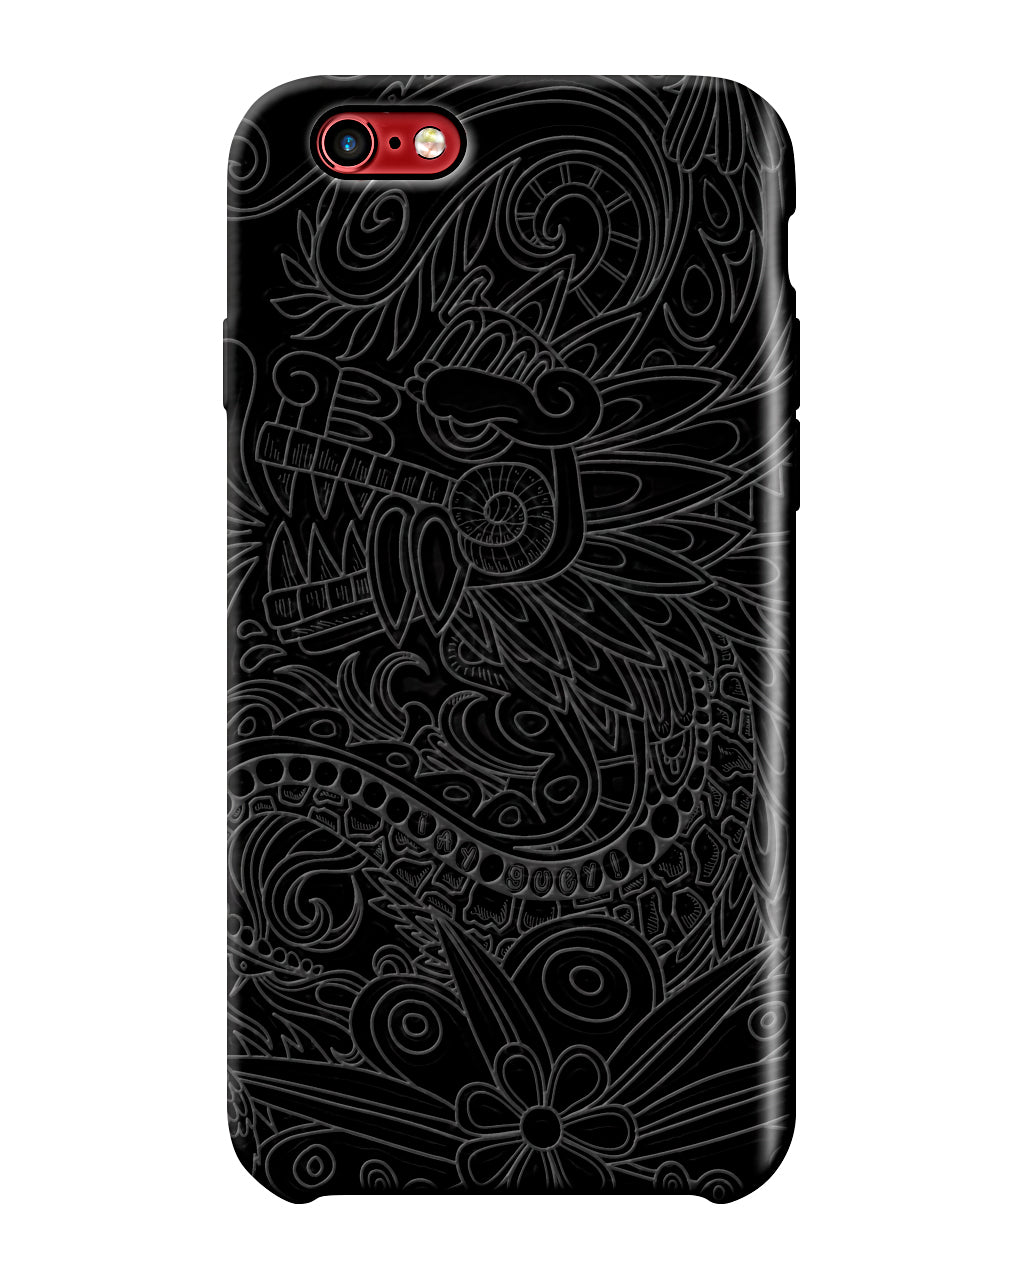 Carcasa iPhone - Kuk Negro